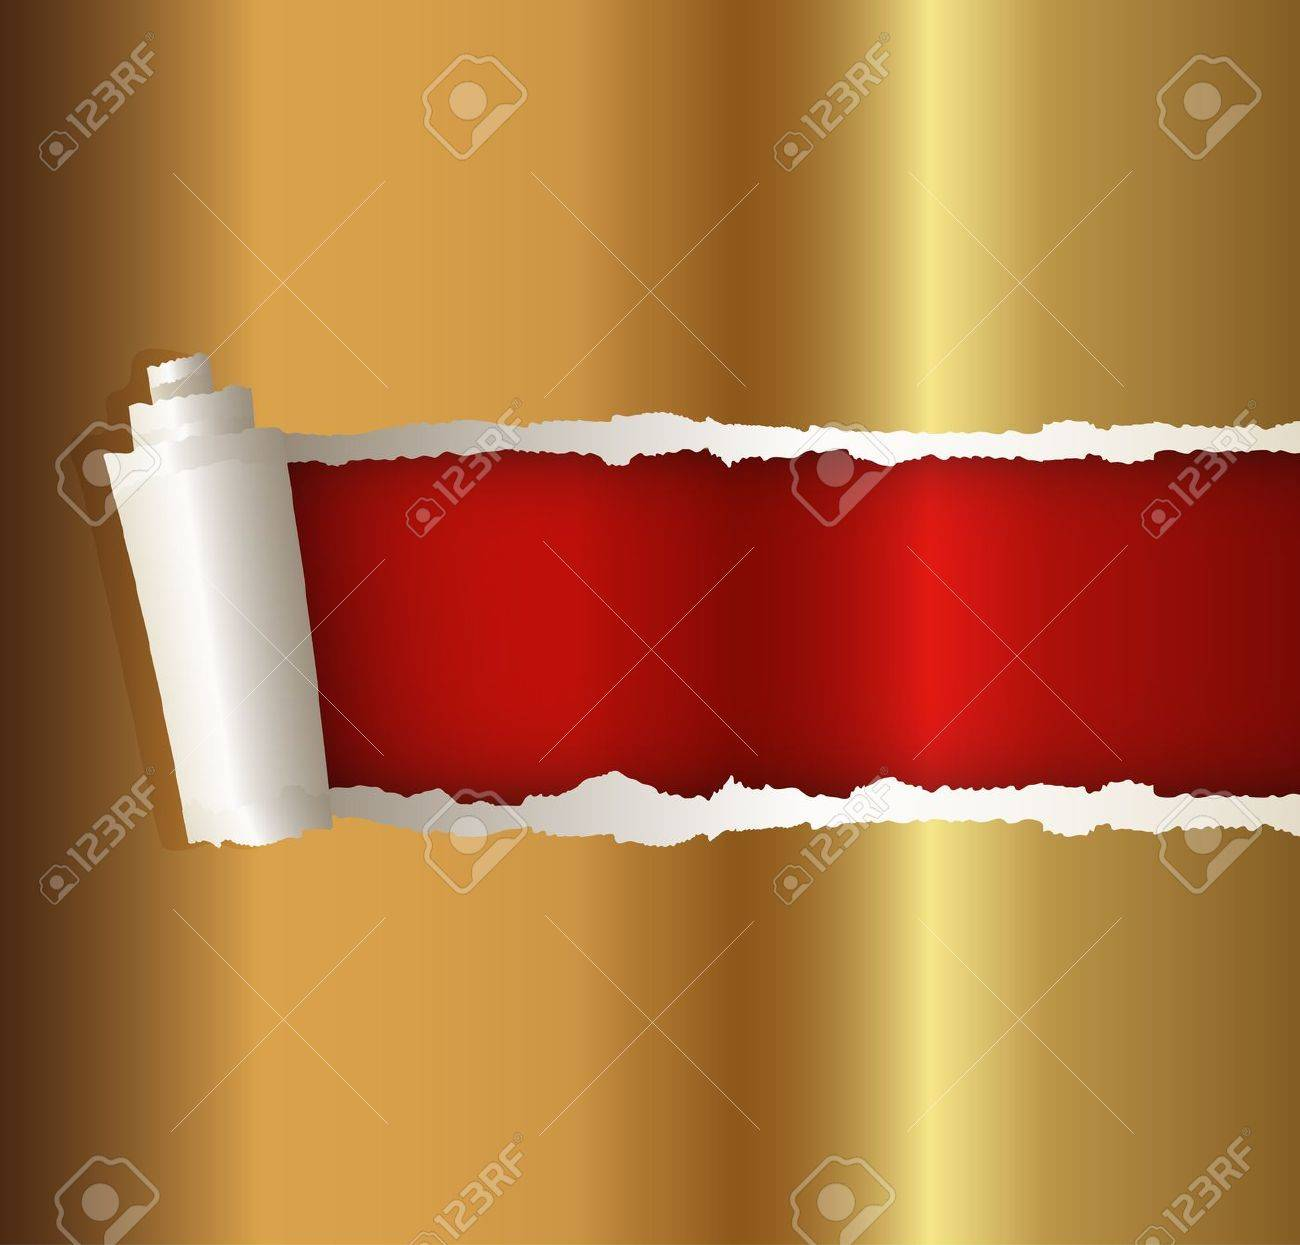 torn paper gold color, suitable for a Christmas background Stock Vector - 14737891